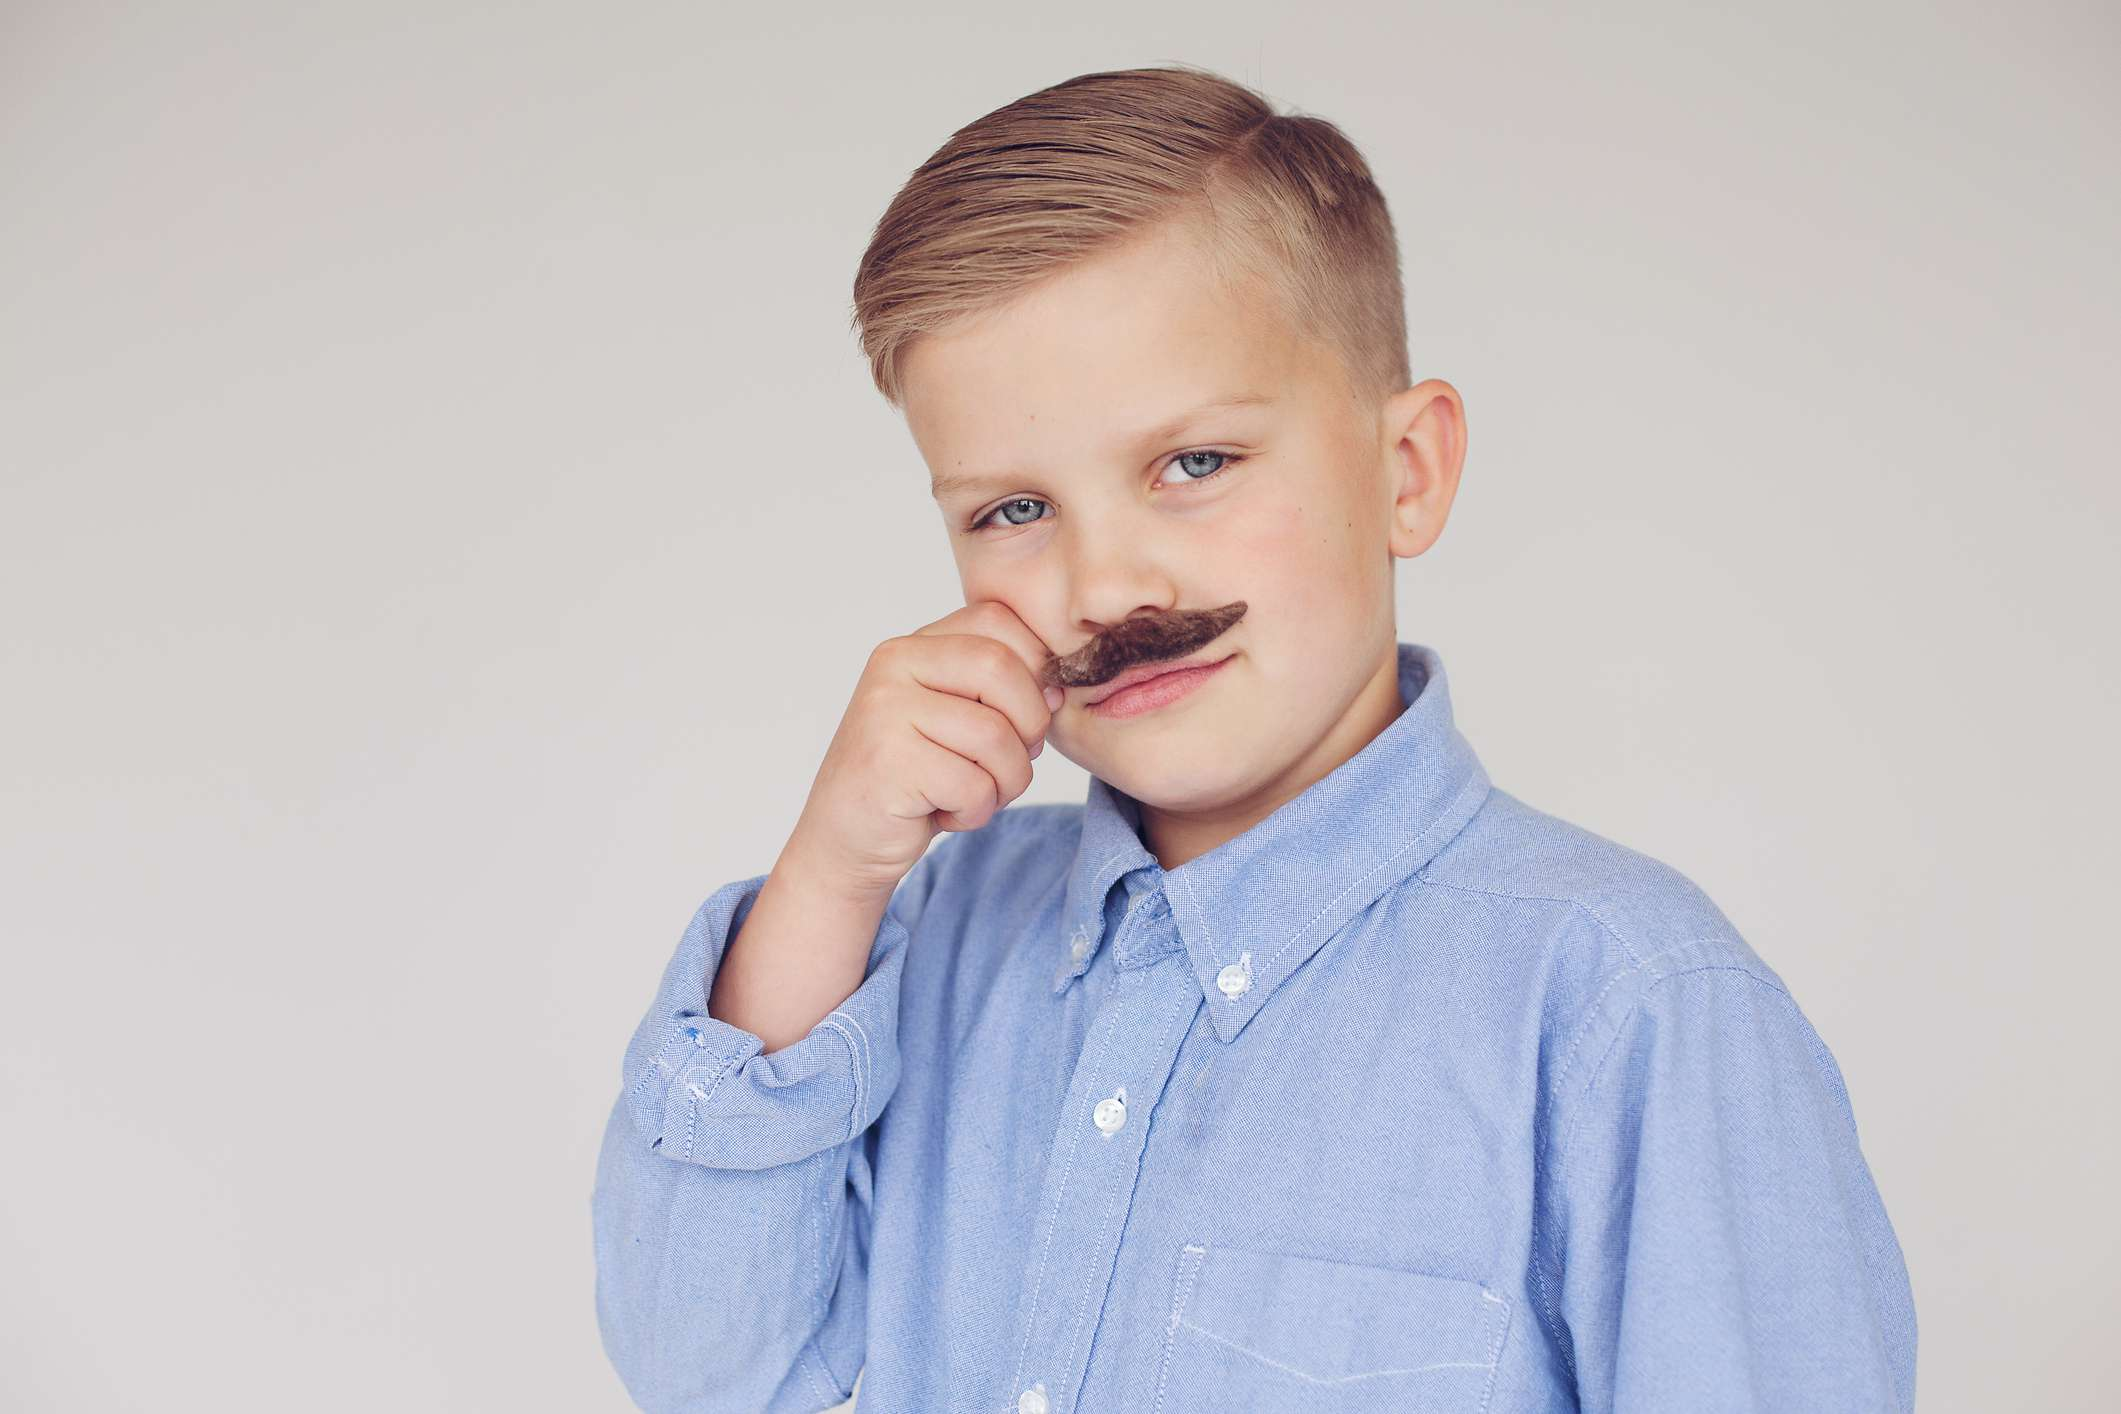 Young boy with fake mustache